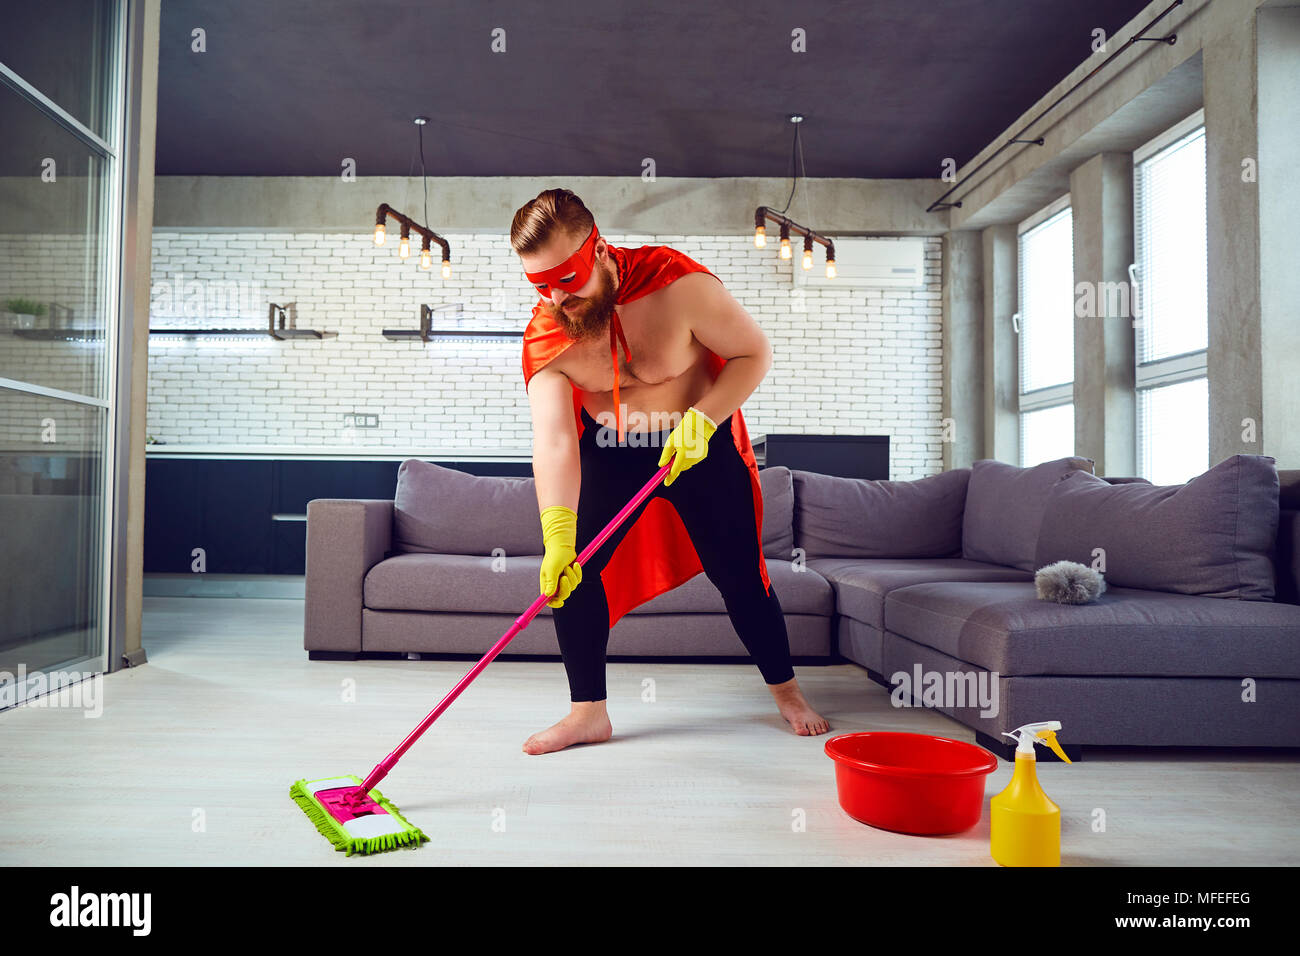 A Fat Funny Man In A Superhero Costume Is Cleaning The House Stock Photo Alamy